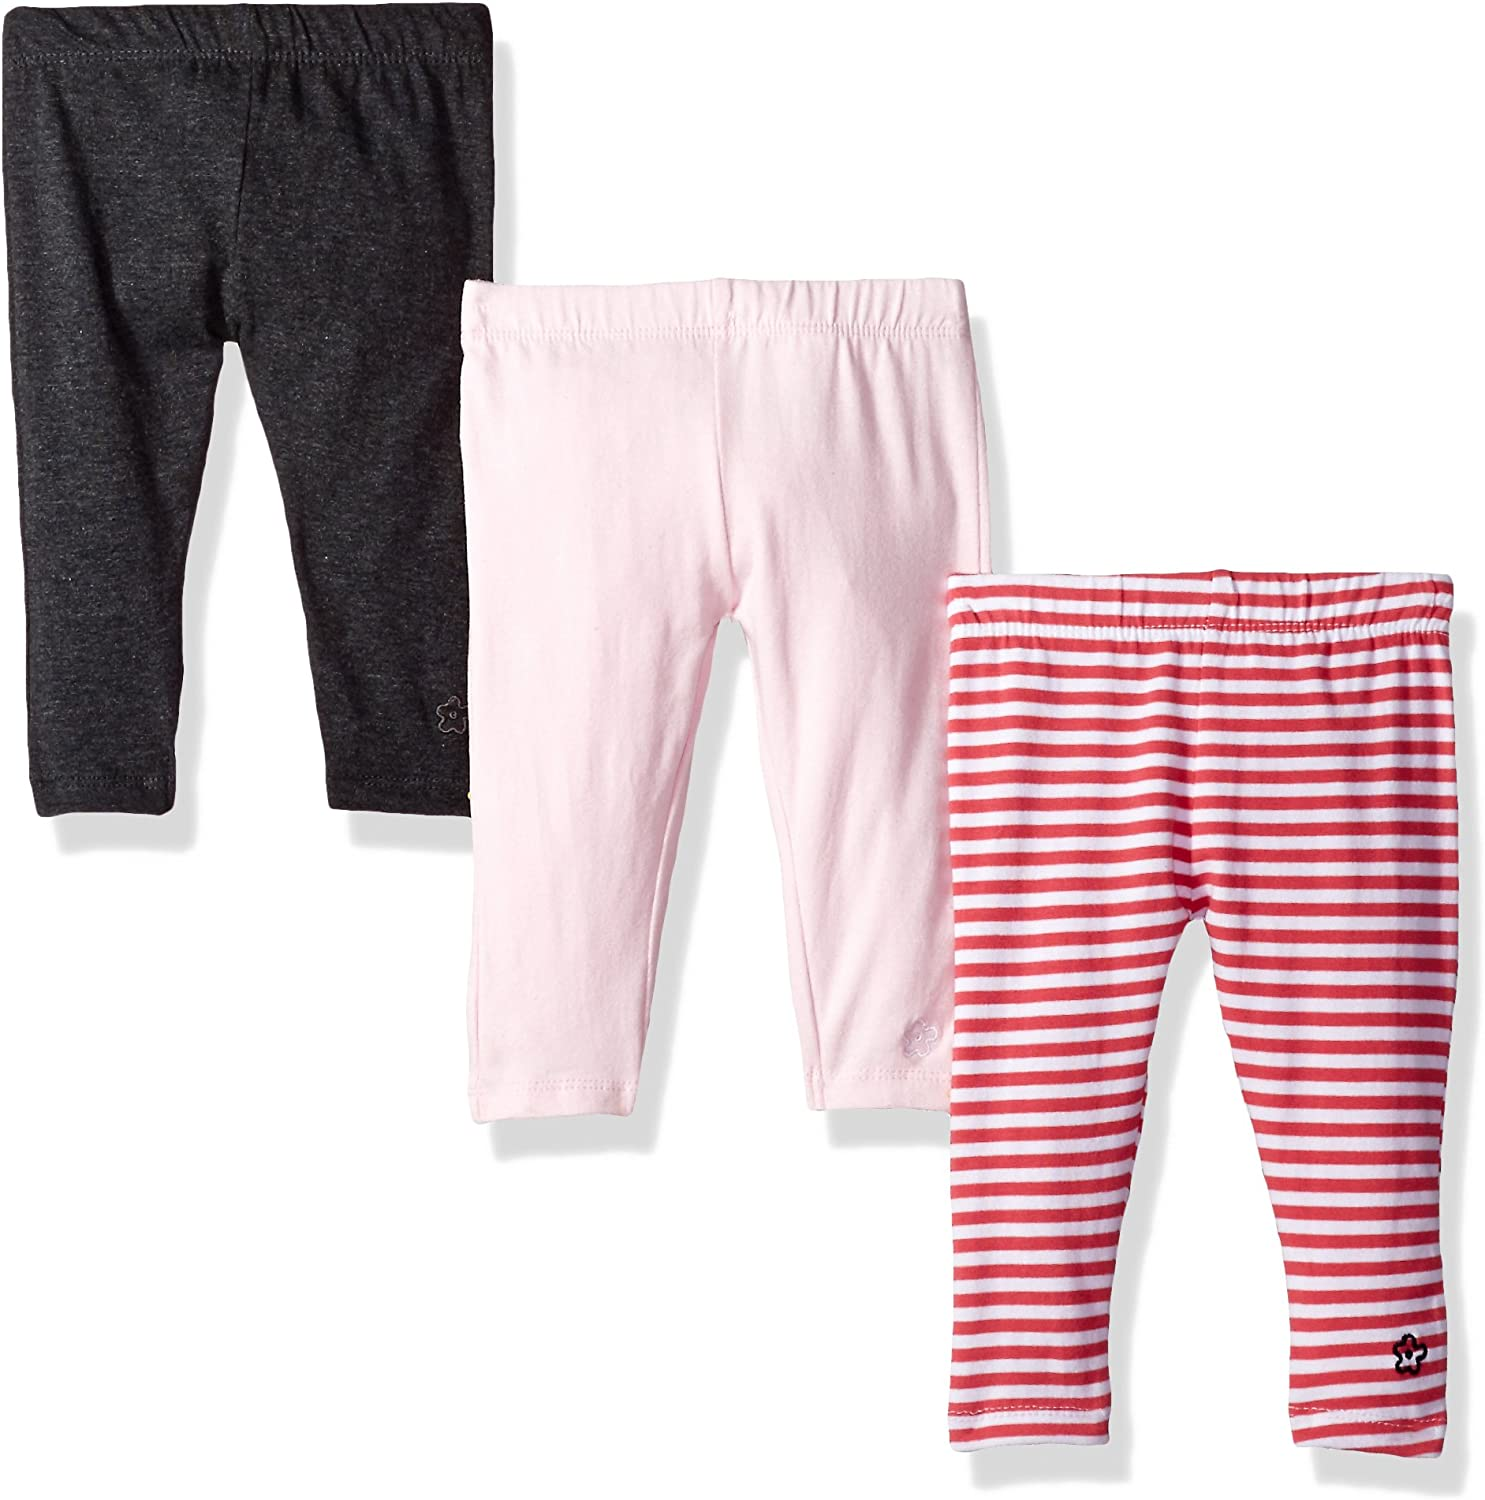 Limited Too Girls' 3 Pack Cotton Spandex Legging